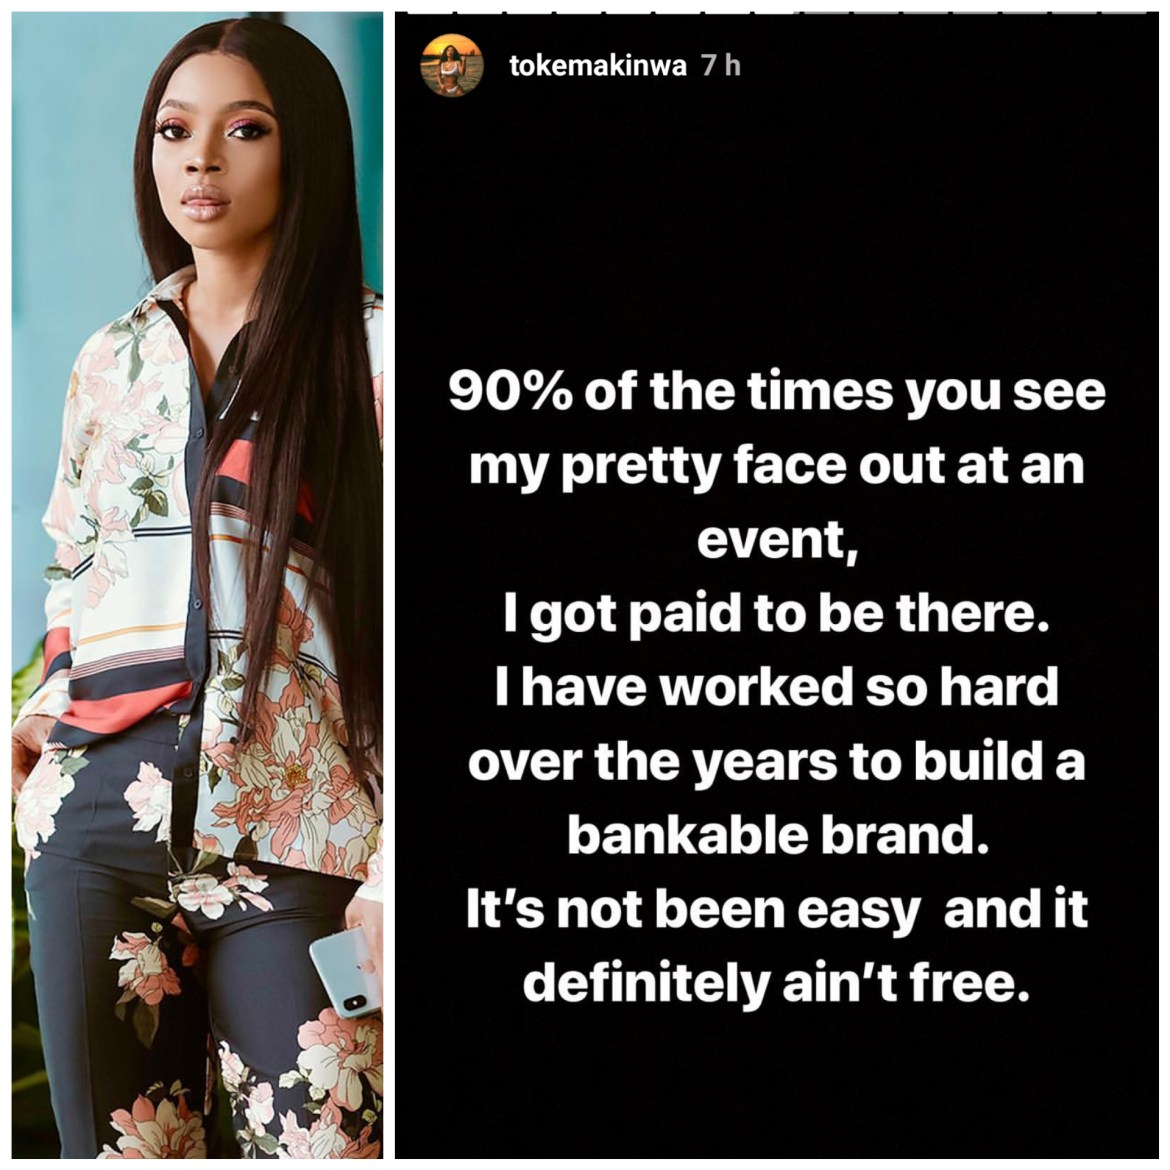 5cc9d8c1b091f - 'I get paid to take my pretty face to events' – Toke Makinwa brags